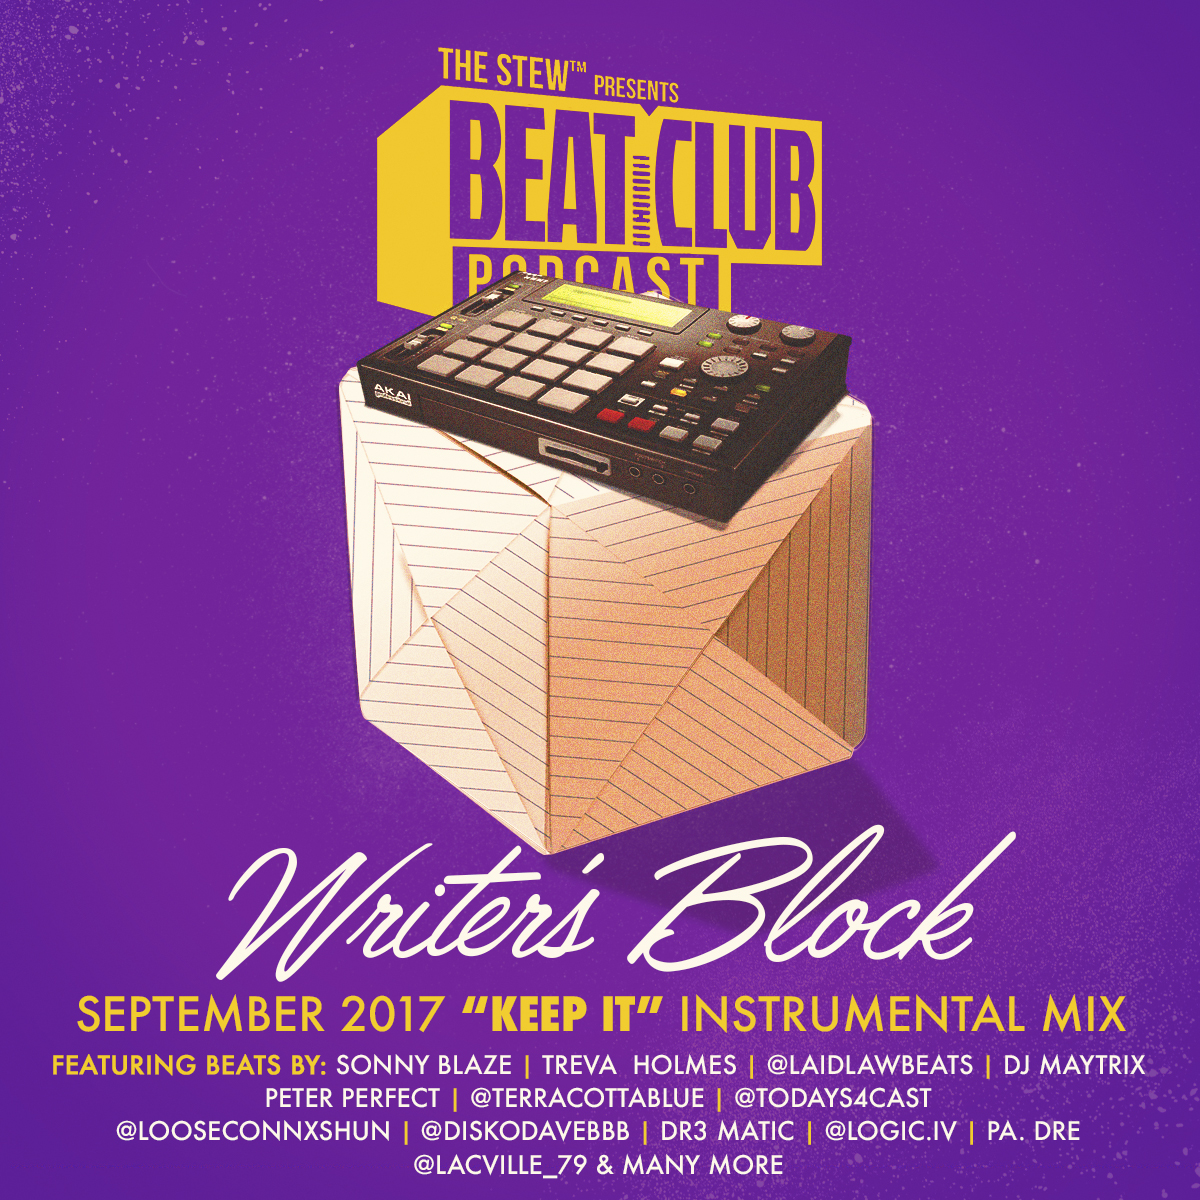 "Beat Club presents ""Writer's Block"" - a mix of all the tracks that made the ""Keep It"" List in the month of September 2017. Congrats to all the producers who made it  #BCPWritersblock"